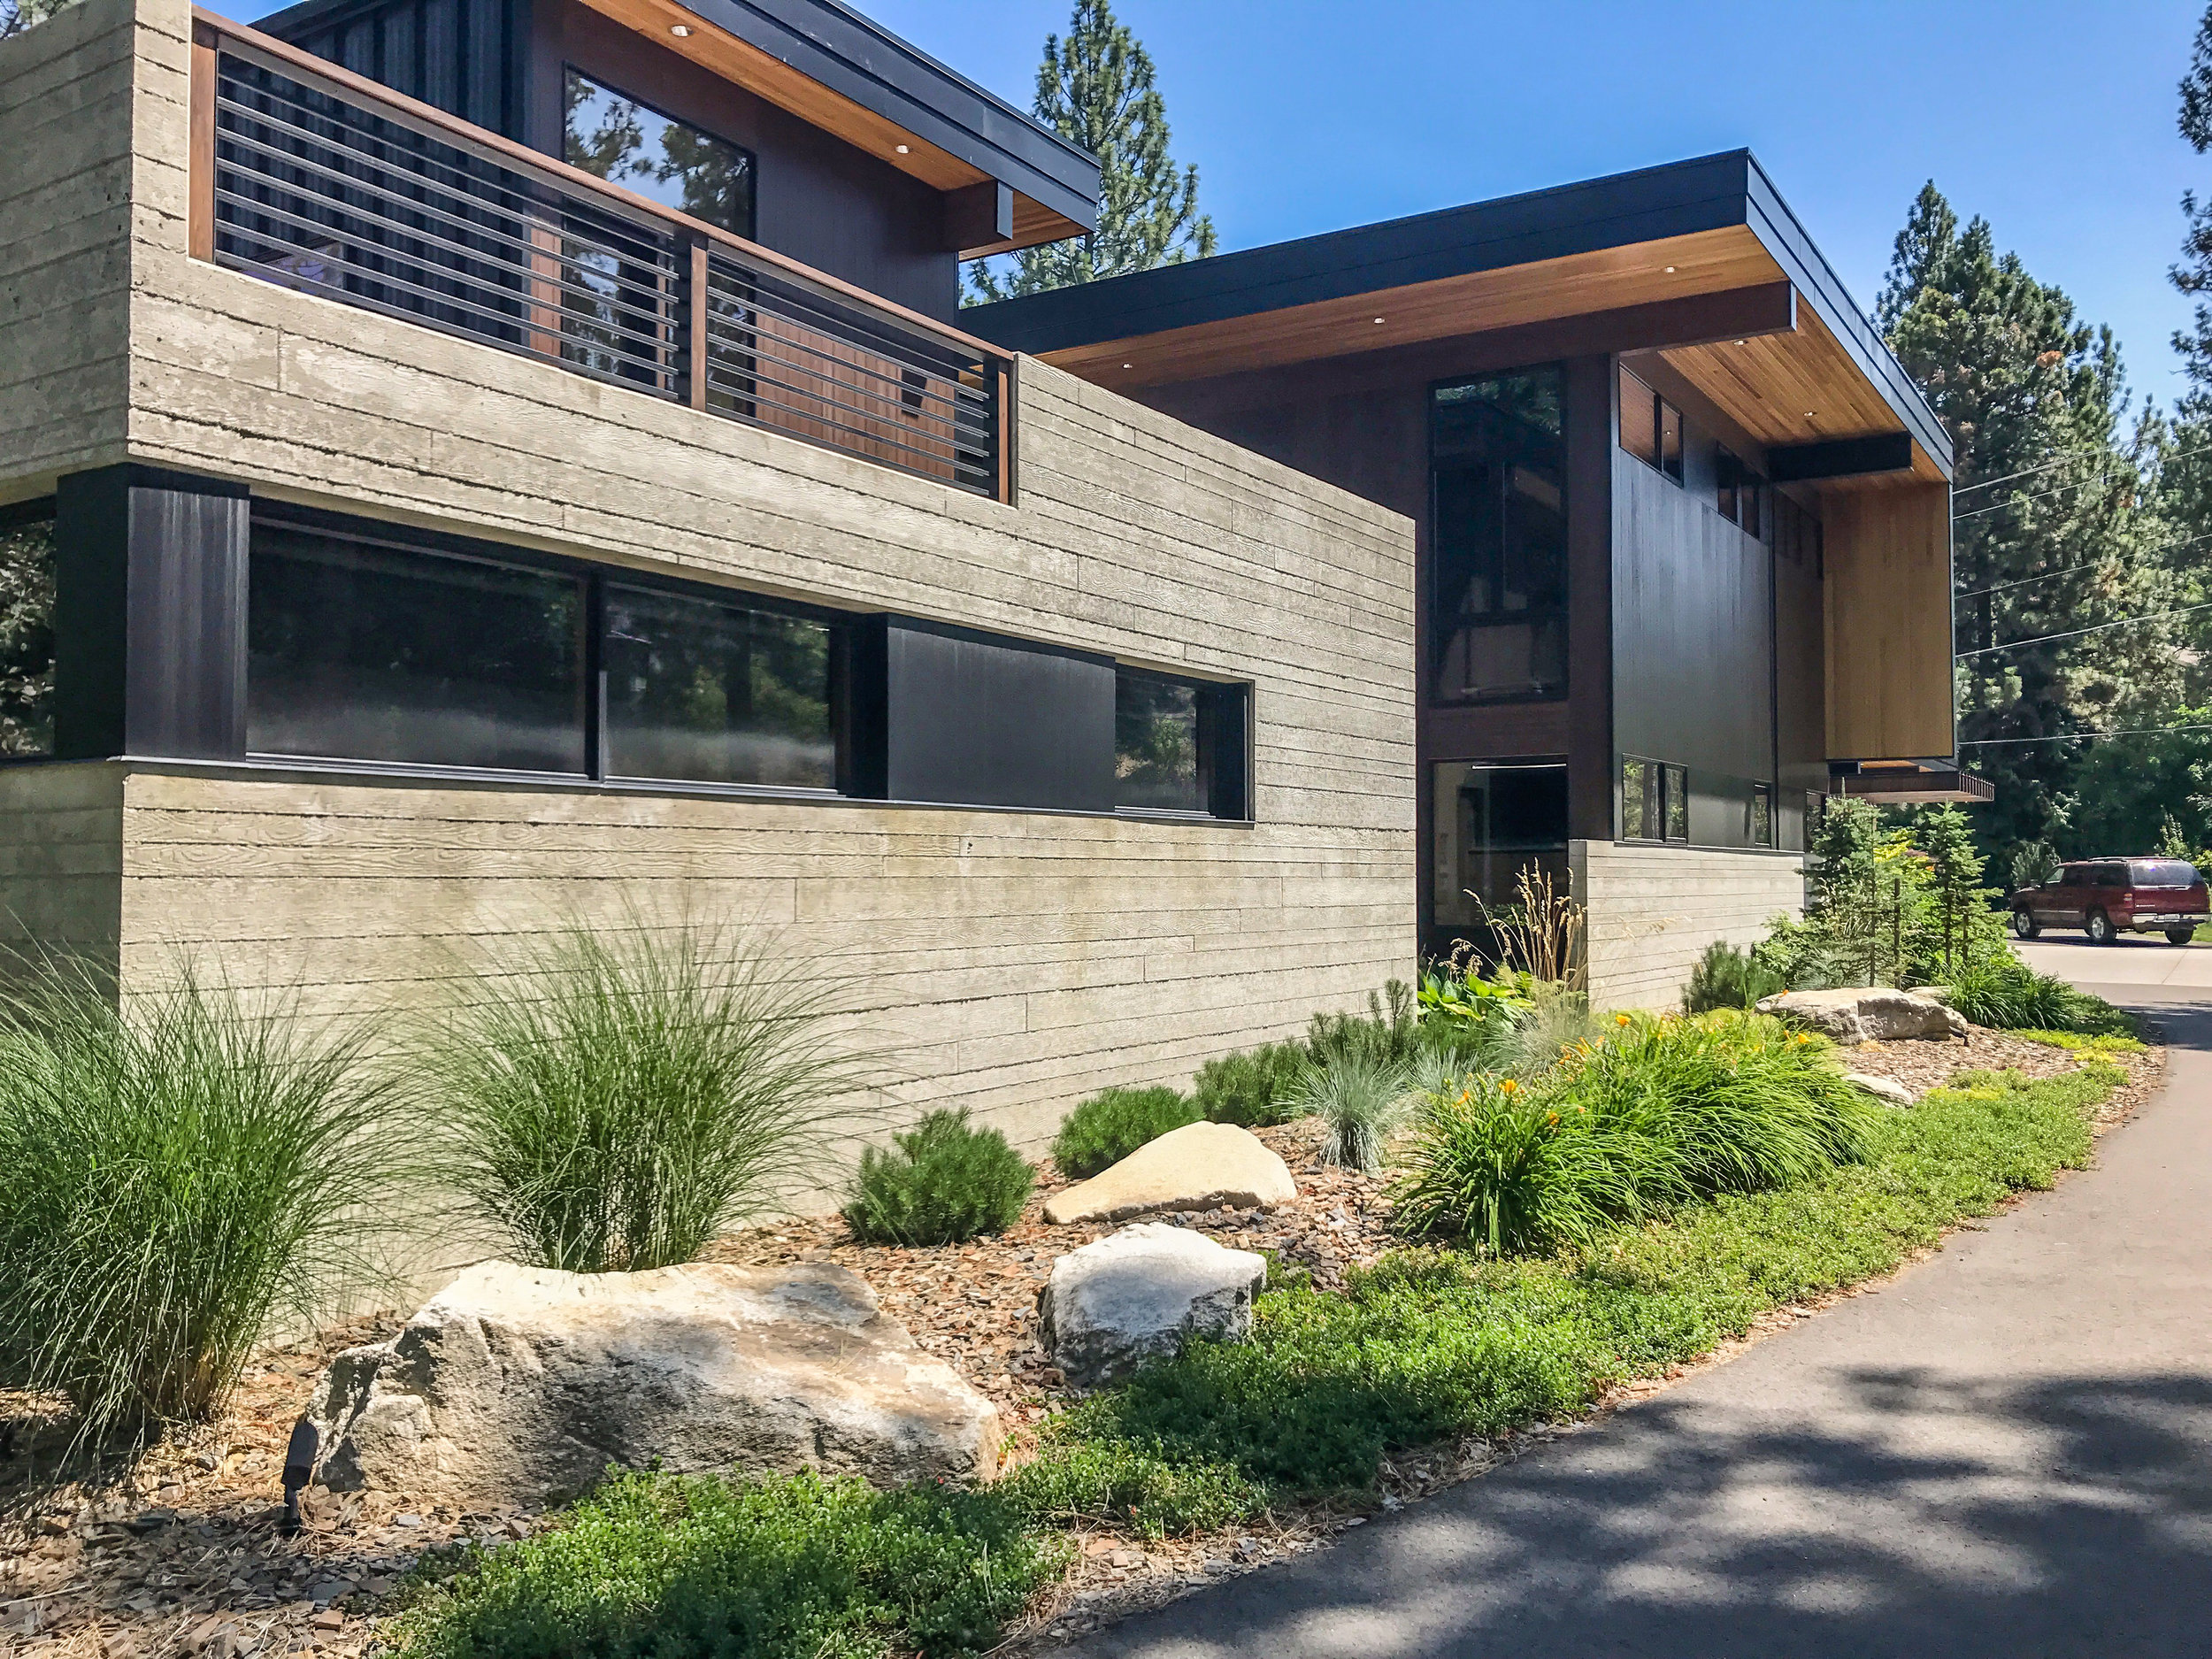 OVERBLUFF RESIDENCE    SPOKANE, WASHINGTON    VIEW PROJECT